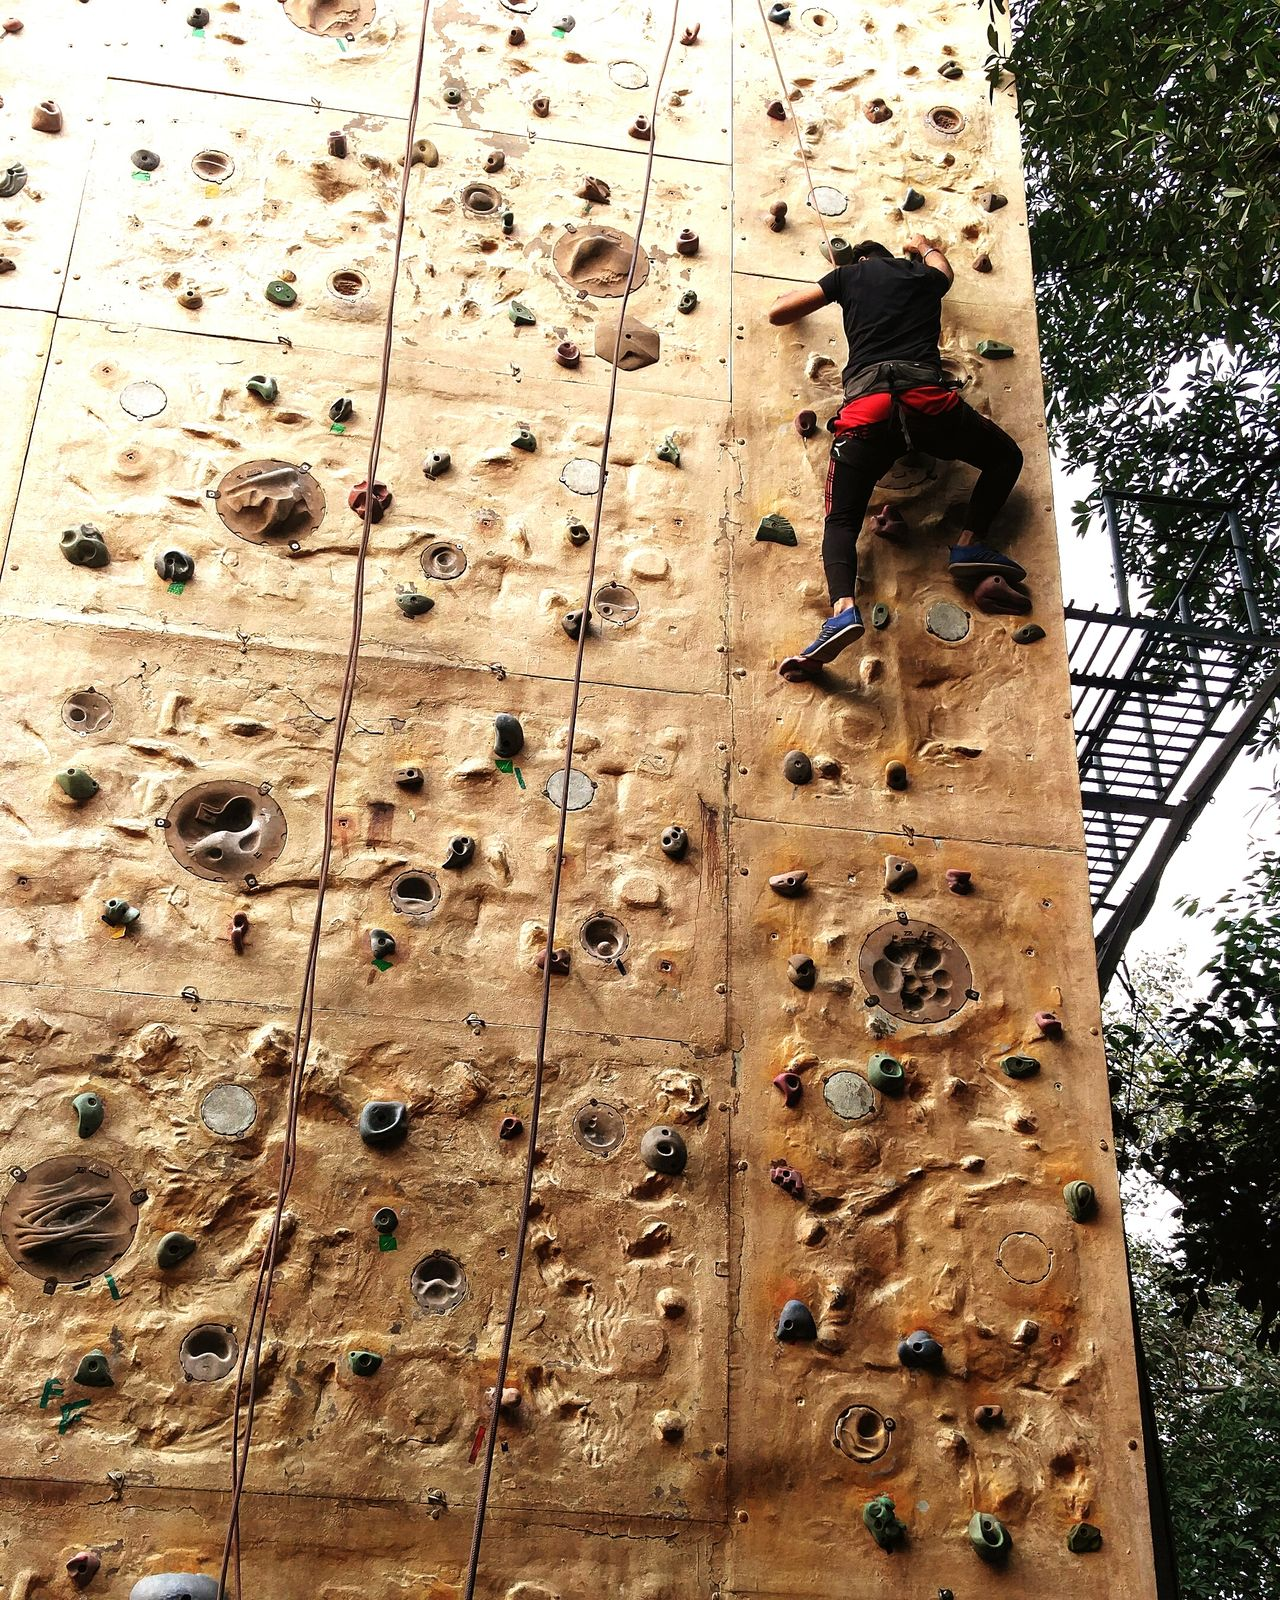 Rock Climbing Climbing Adventure One Man Only Sport Full Length Lifestyles Extreme Sports Adrenaline Junkie Sunlight Outdoors Strength Training